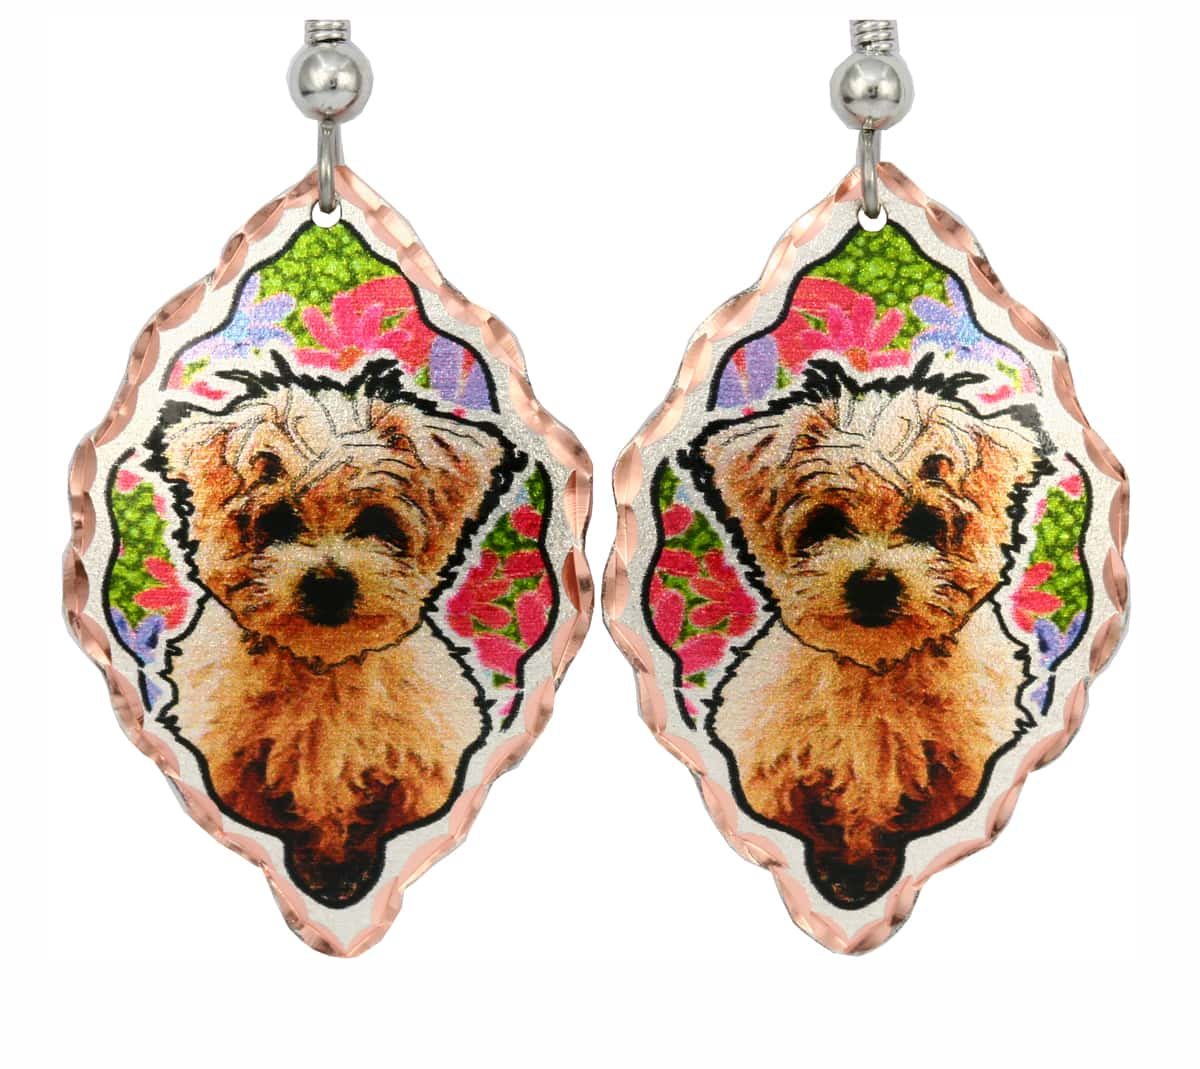 Handmade Dog Jewelry, Poodle Earrings